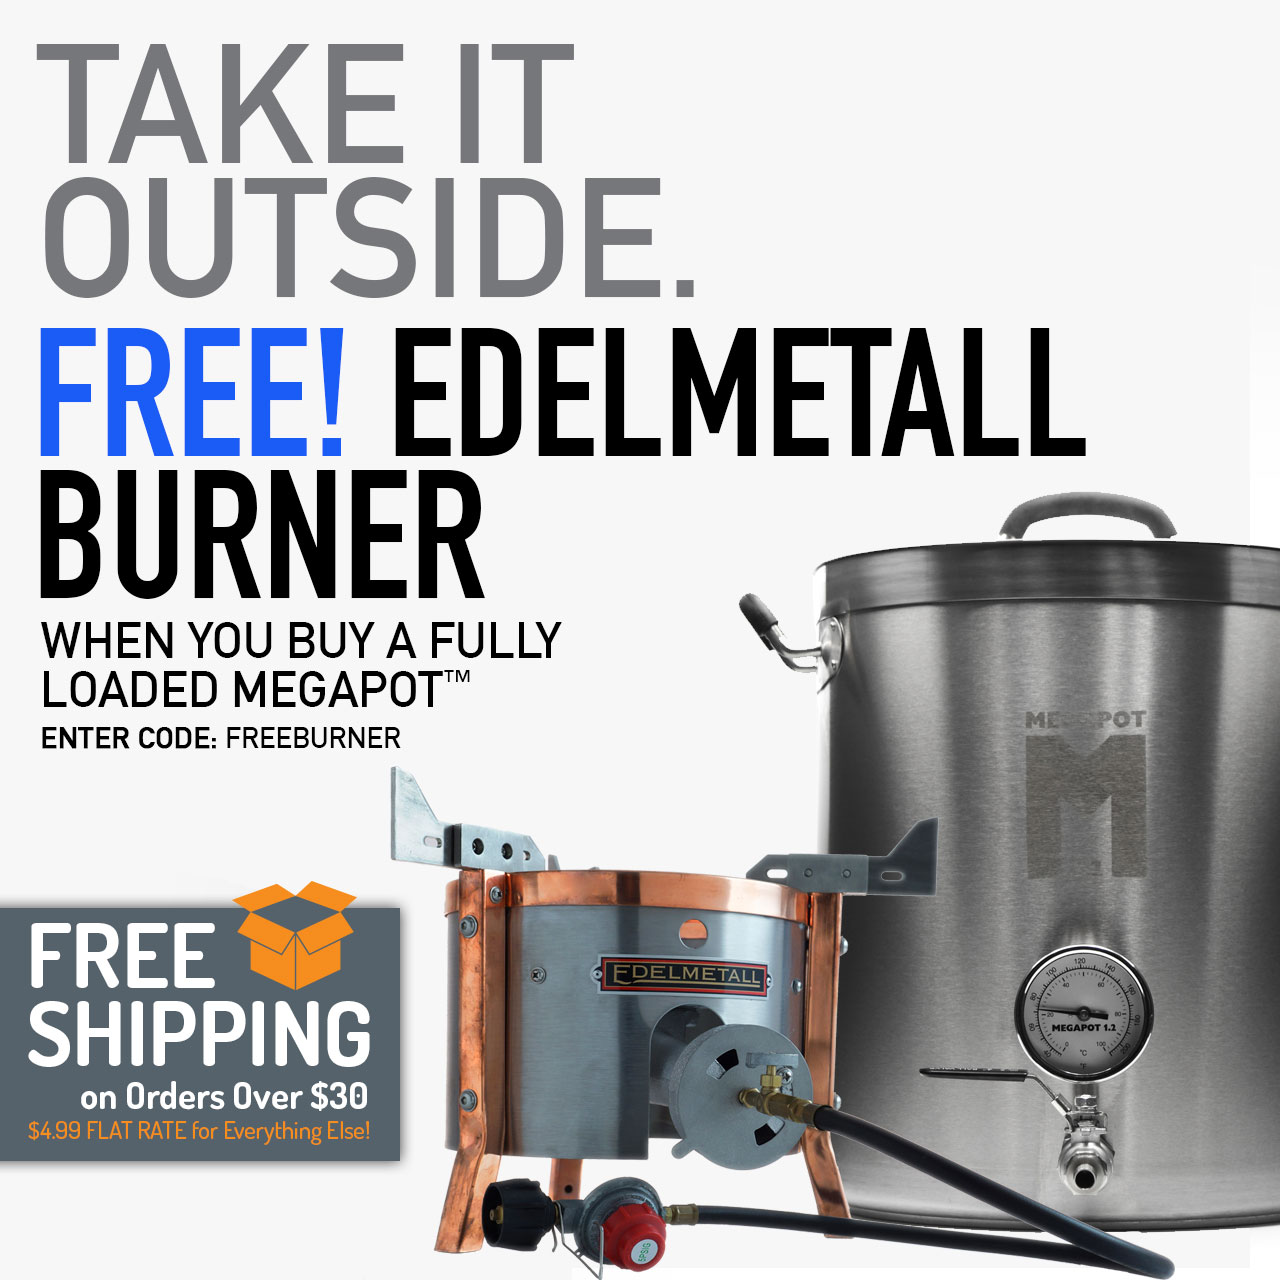 """Buy a Fully-Loaded Megapot 1.2, Get a FREE Edelmetall Br Burner. Use code """"FREEBURNER"""" now through 11:59pm CST on 7/26/2018."""